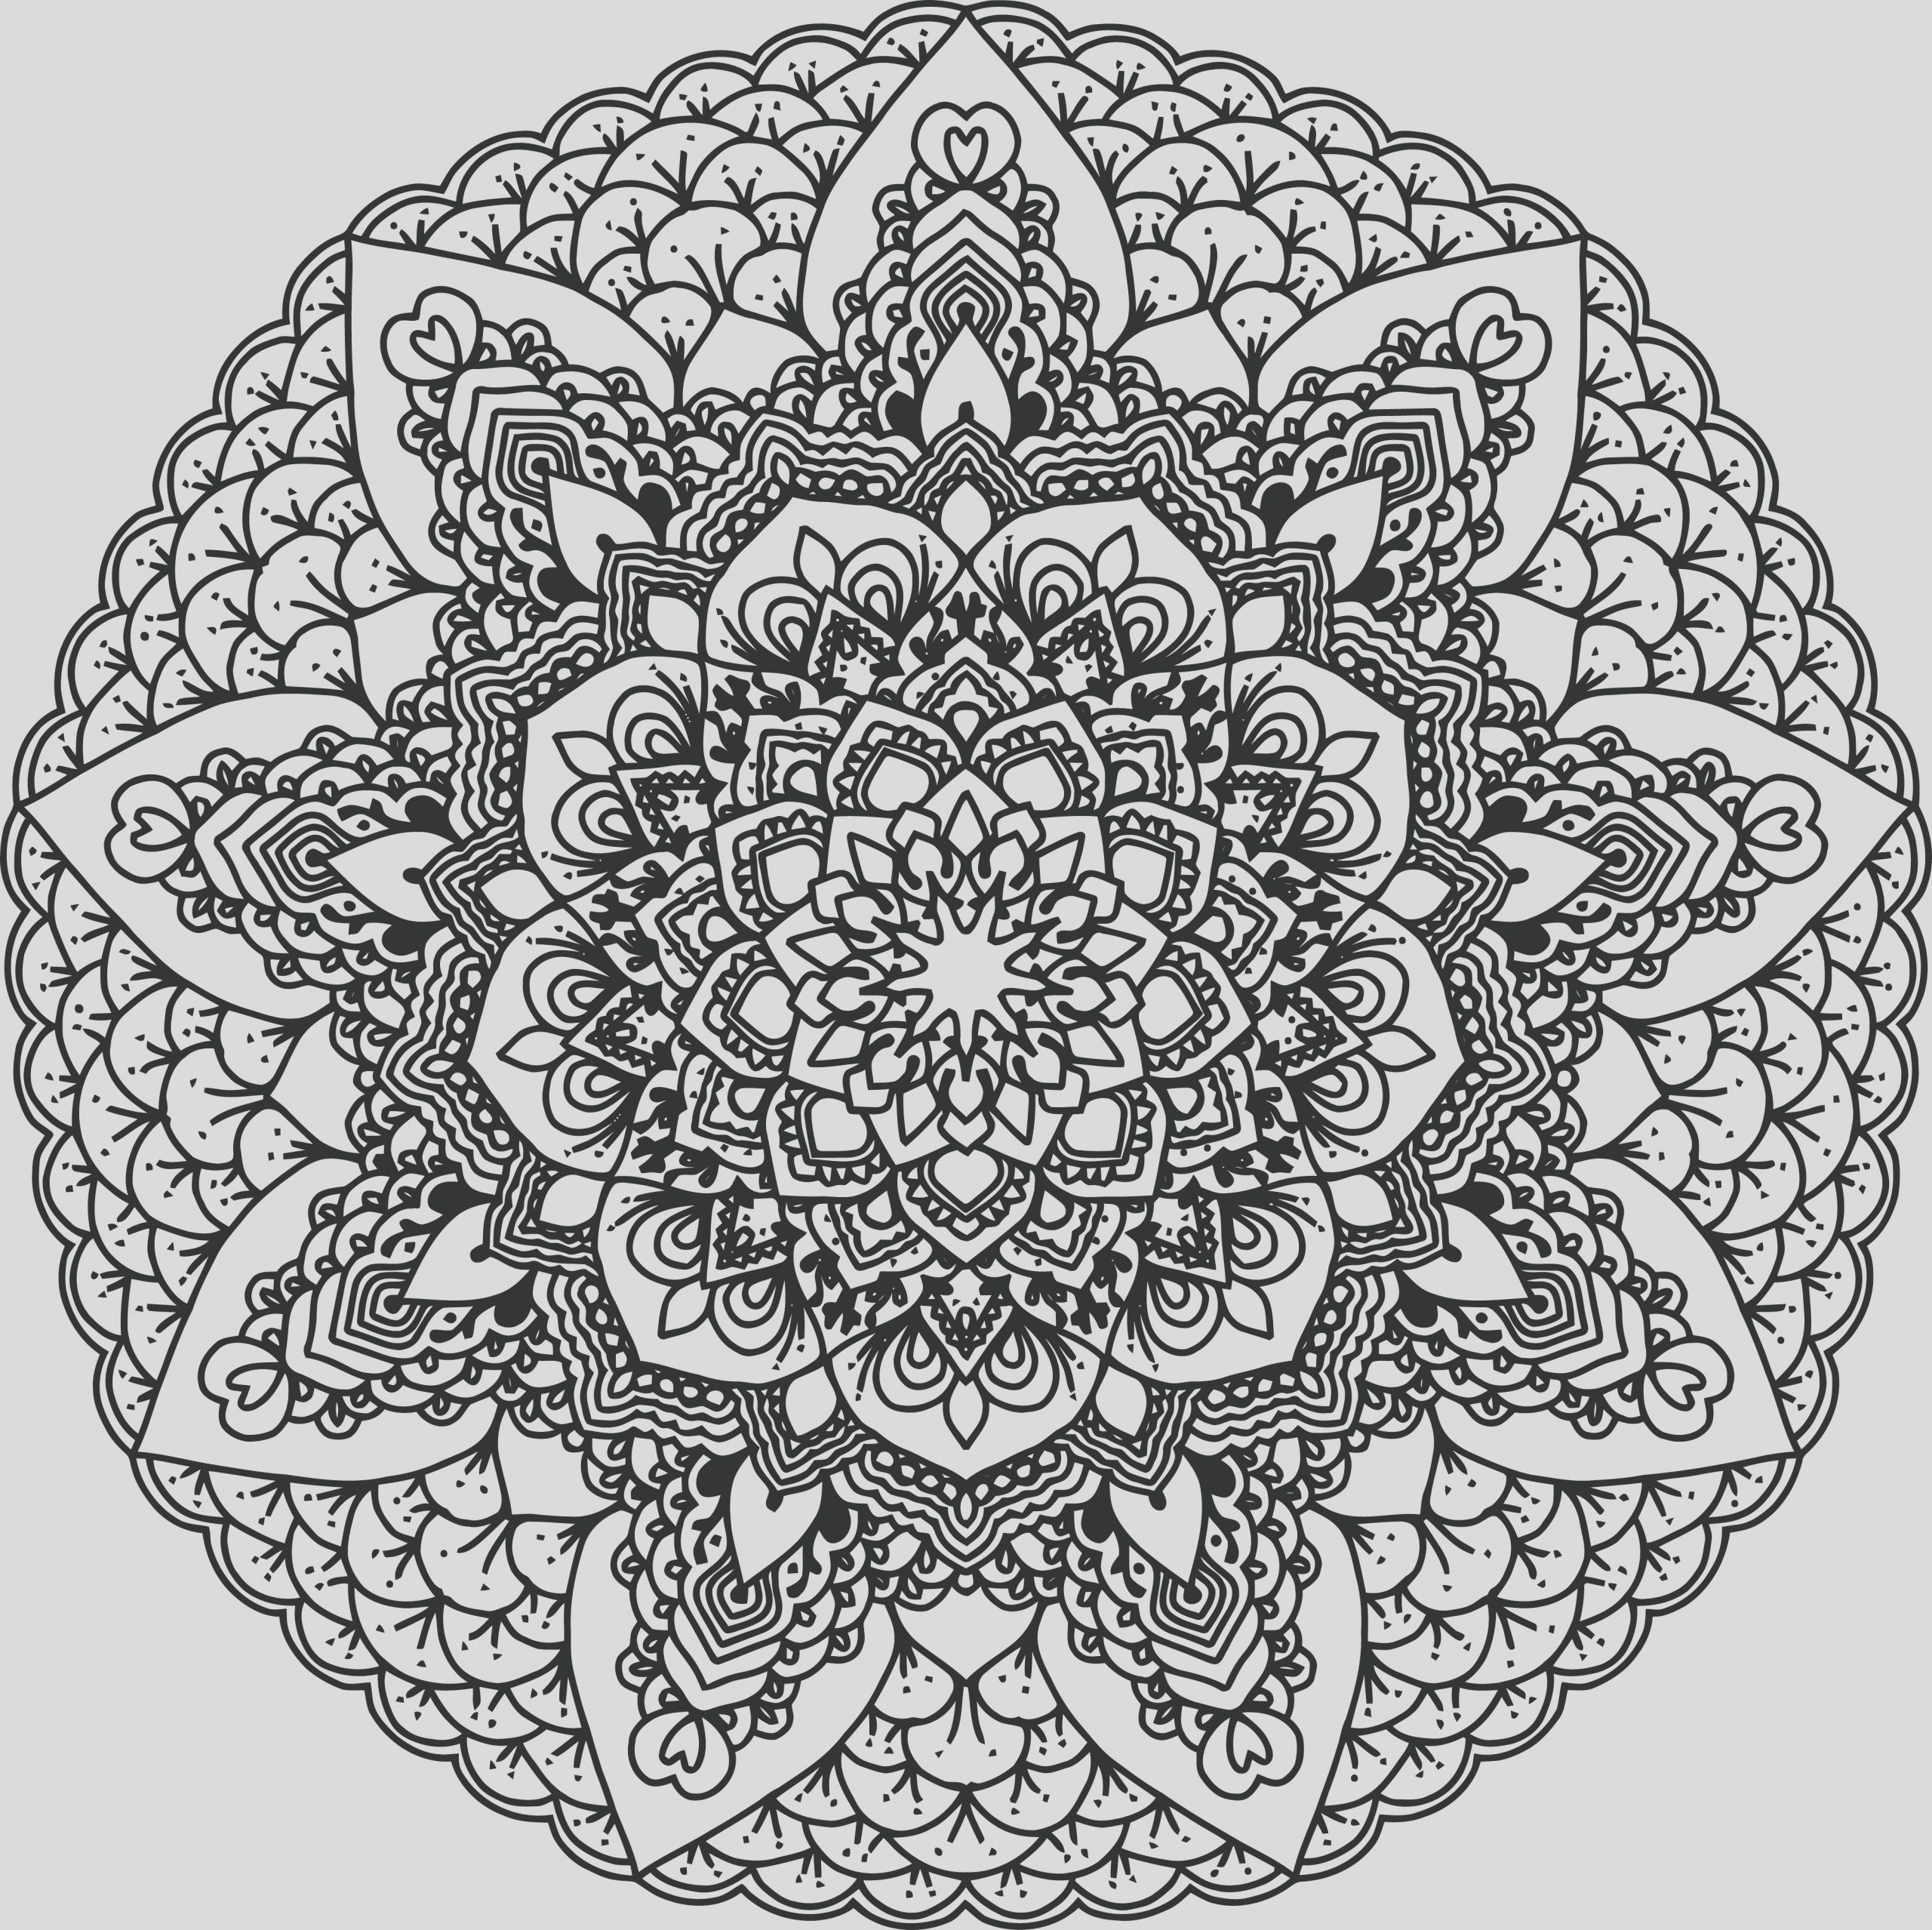 242 Free Clipart A Black And White Adult Coloring Page Floral Mandala